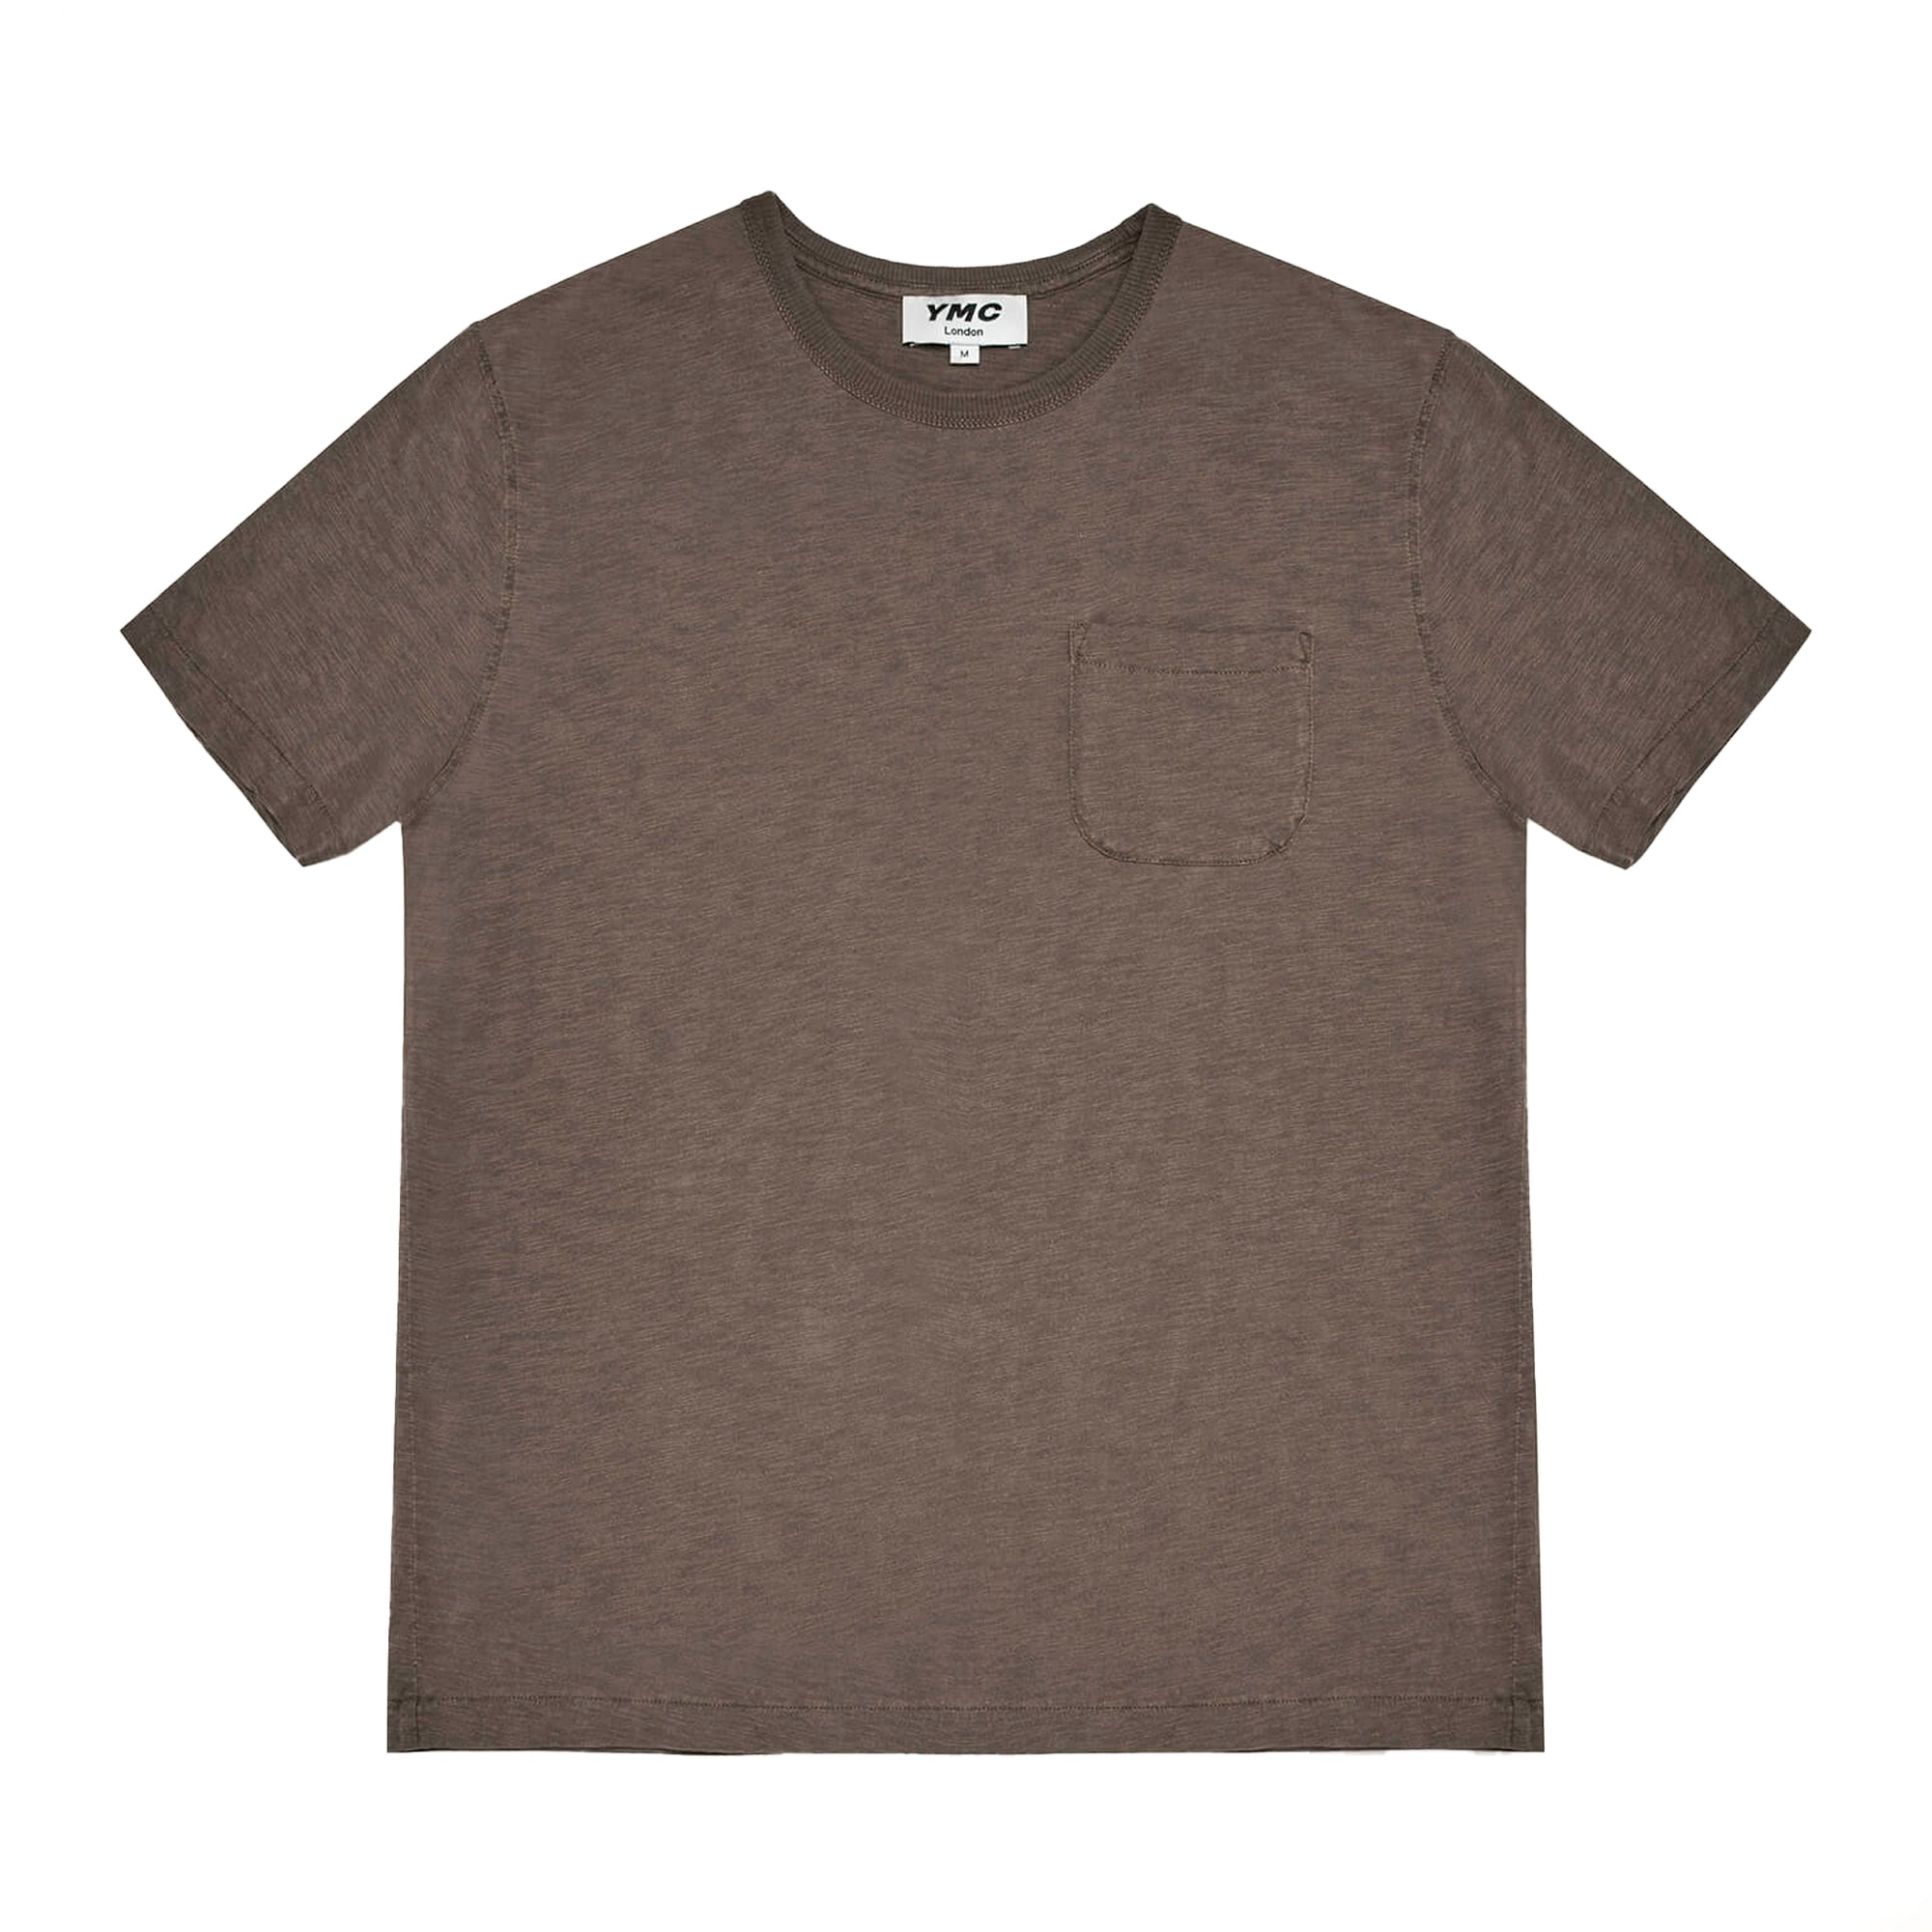 YMC Wild Ones Pocket T-Shirt: Dark Olive - The Union Project